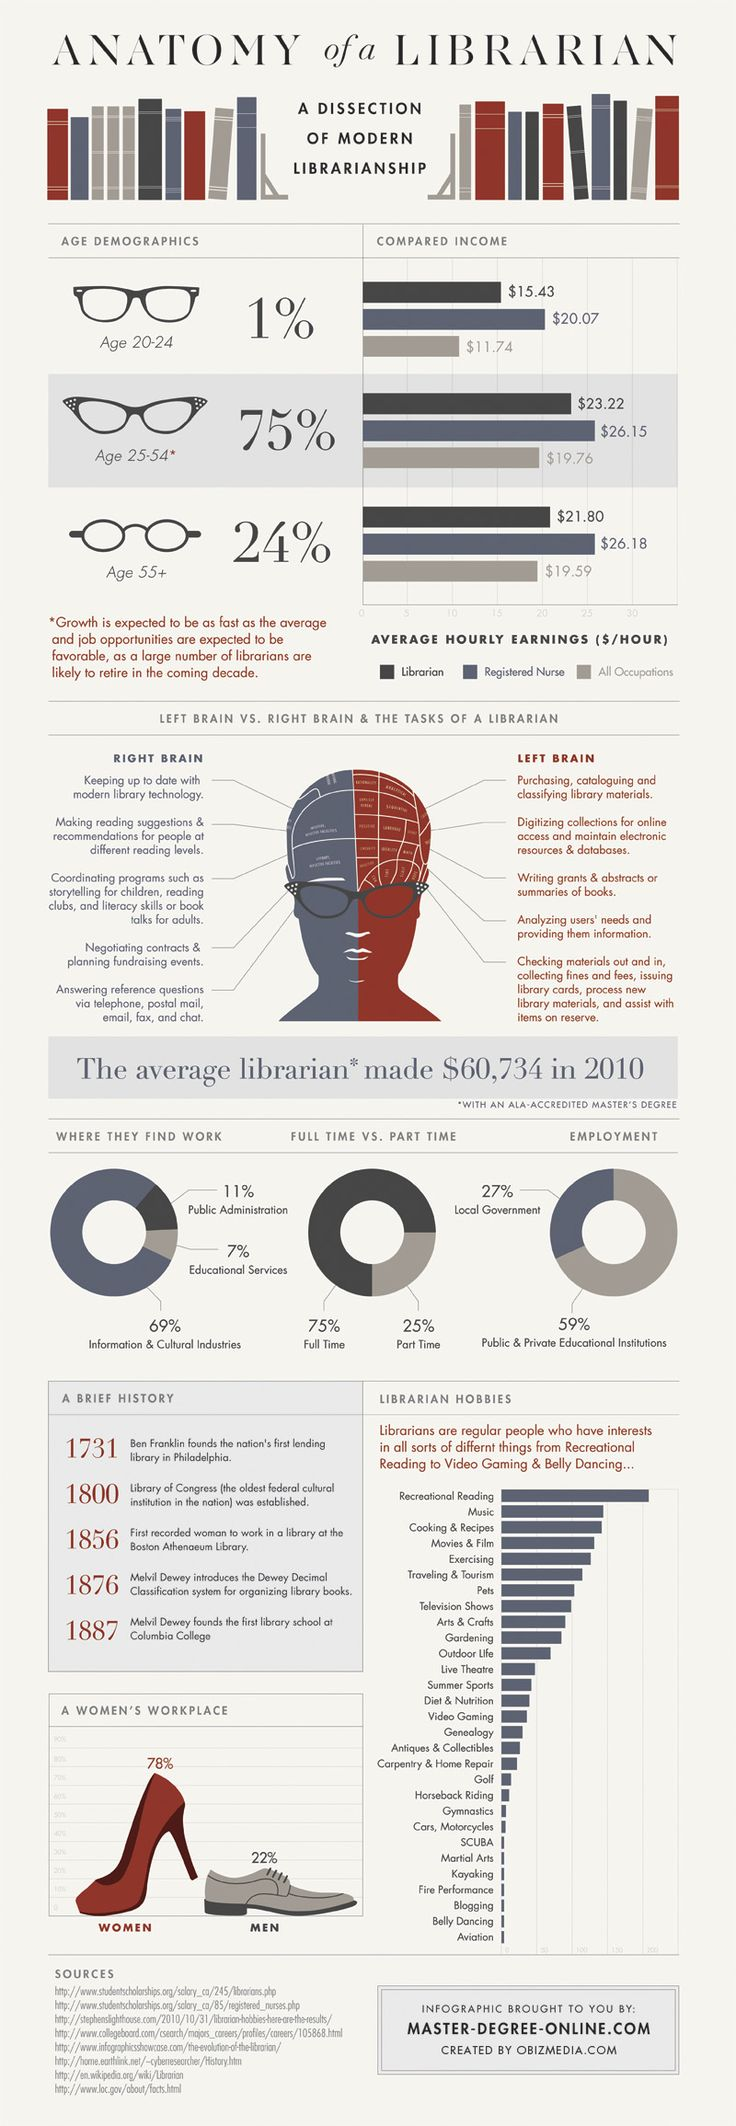 Anatomy of a Librarian by master-degree-online.com